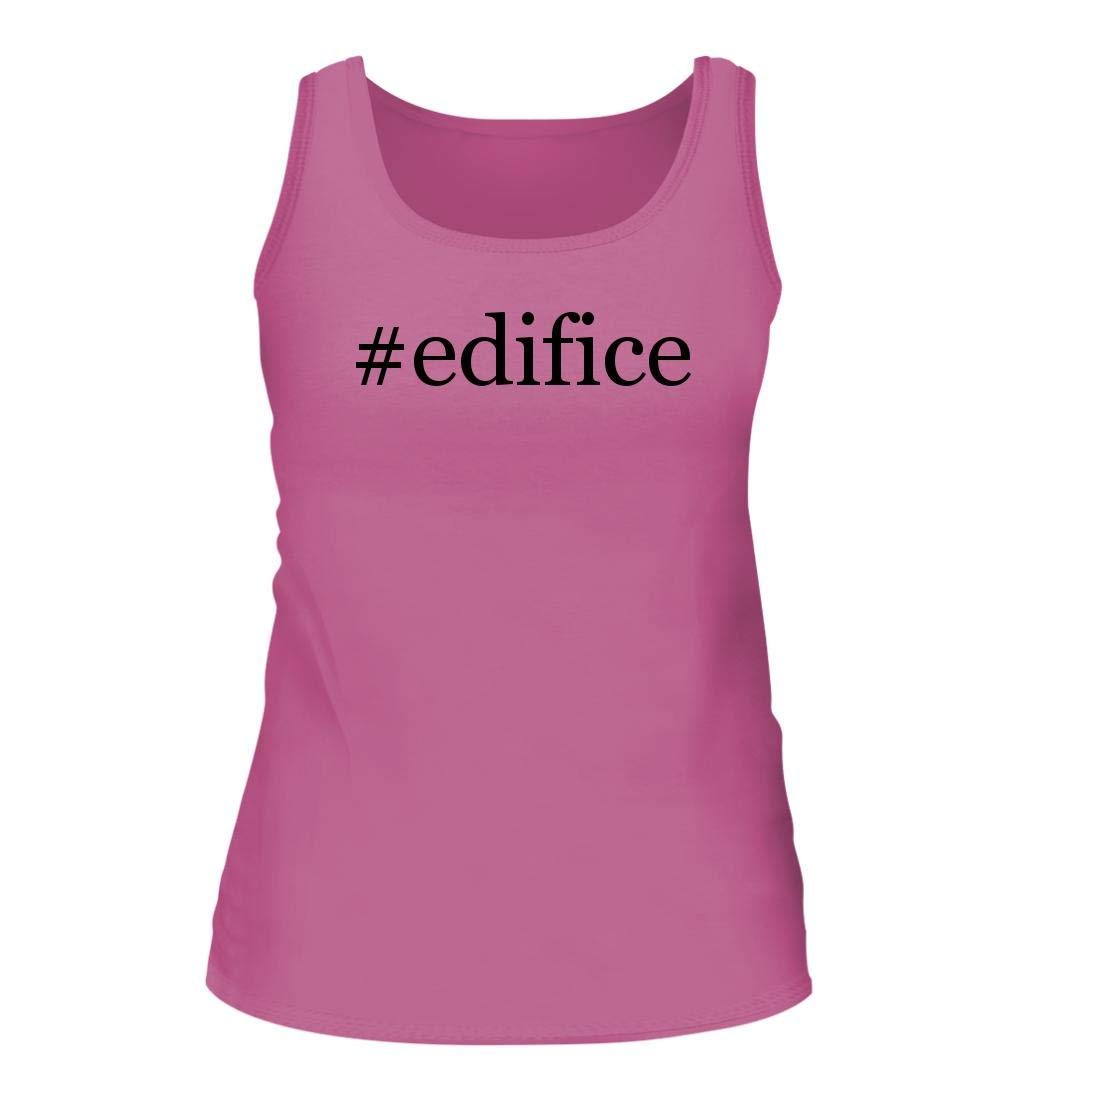 #Edifice - A Nice Hashtag Women's Tank Top, Pink, Large